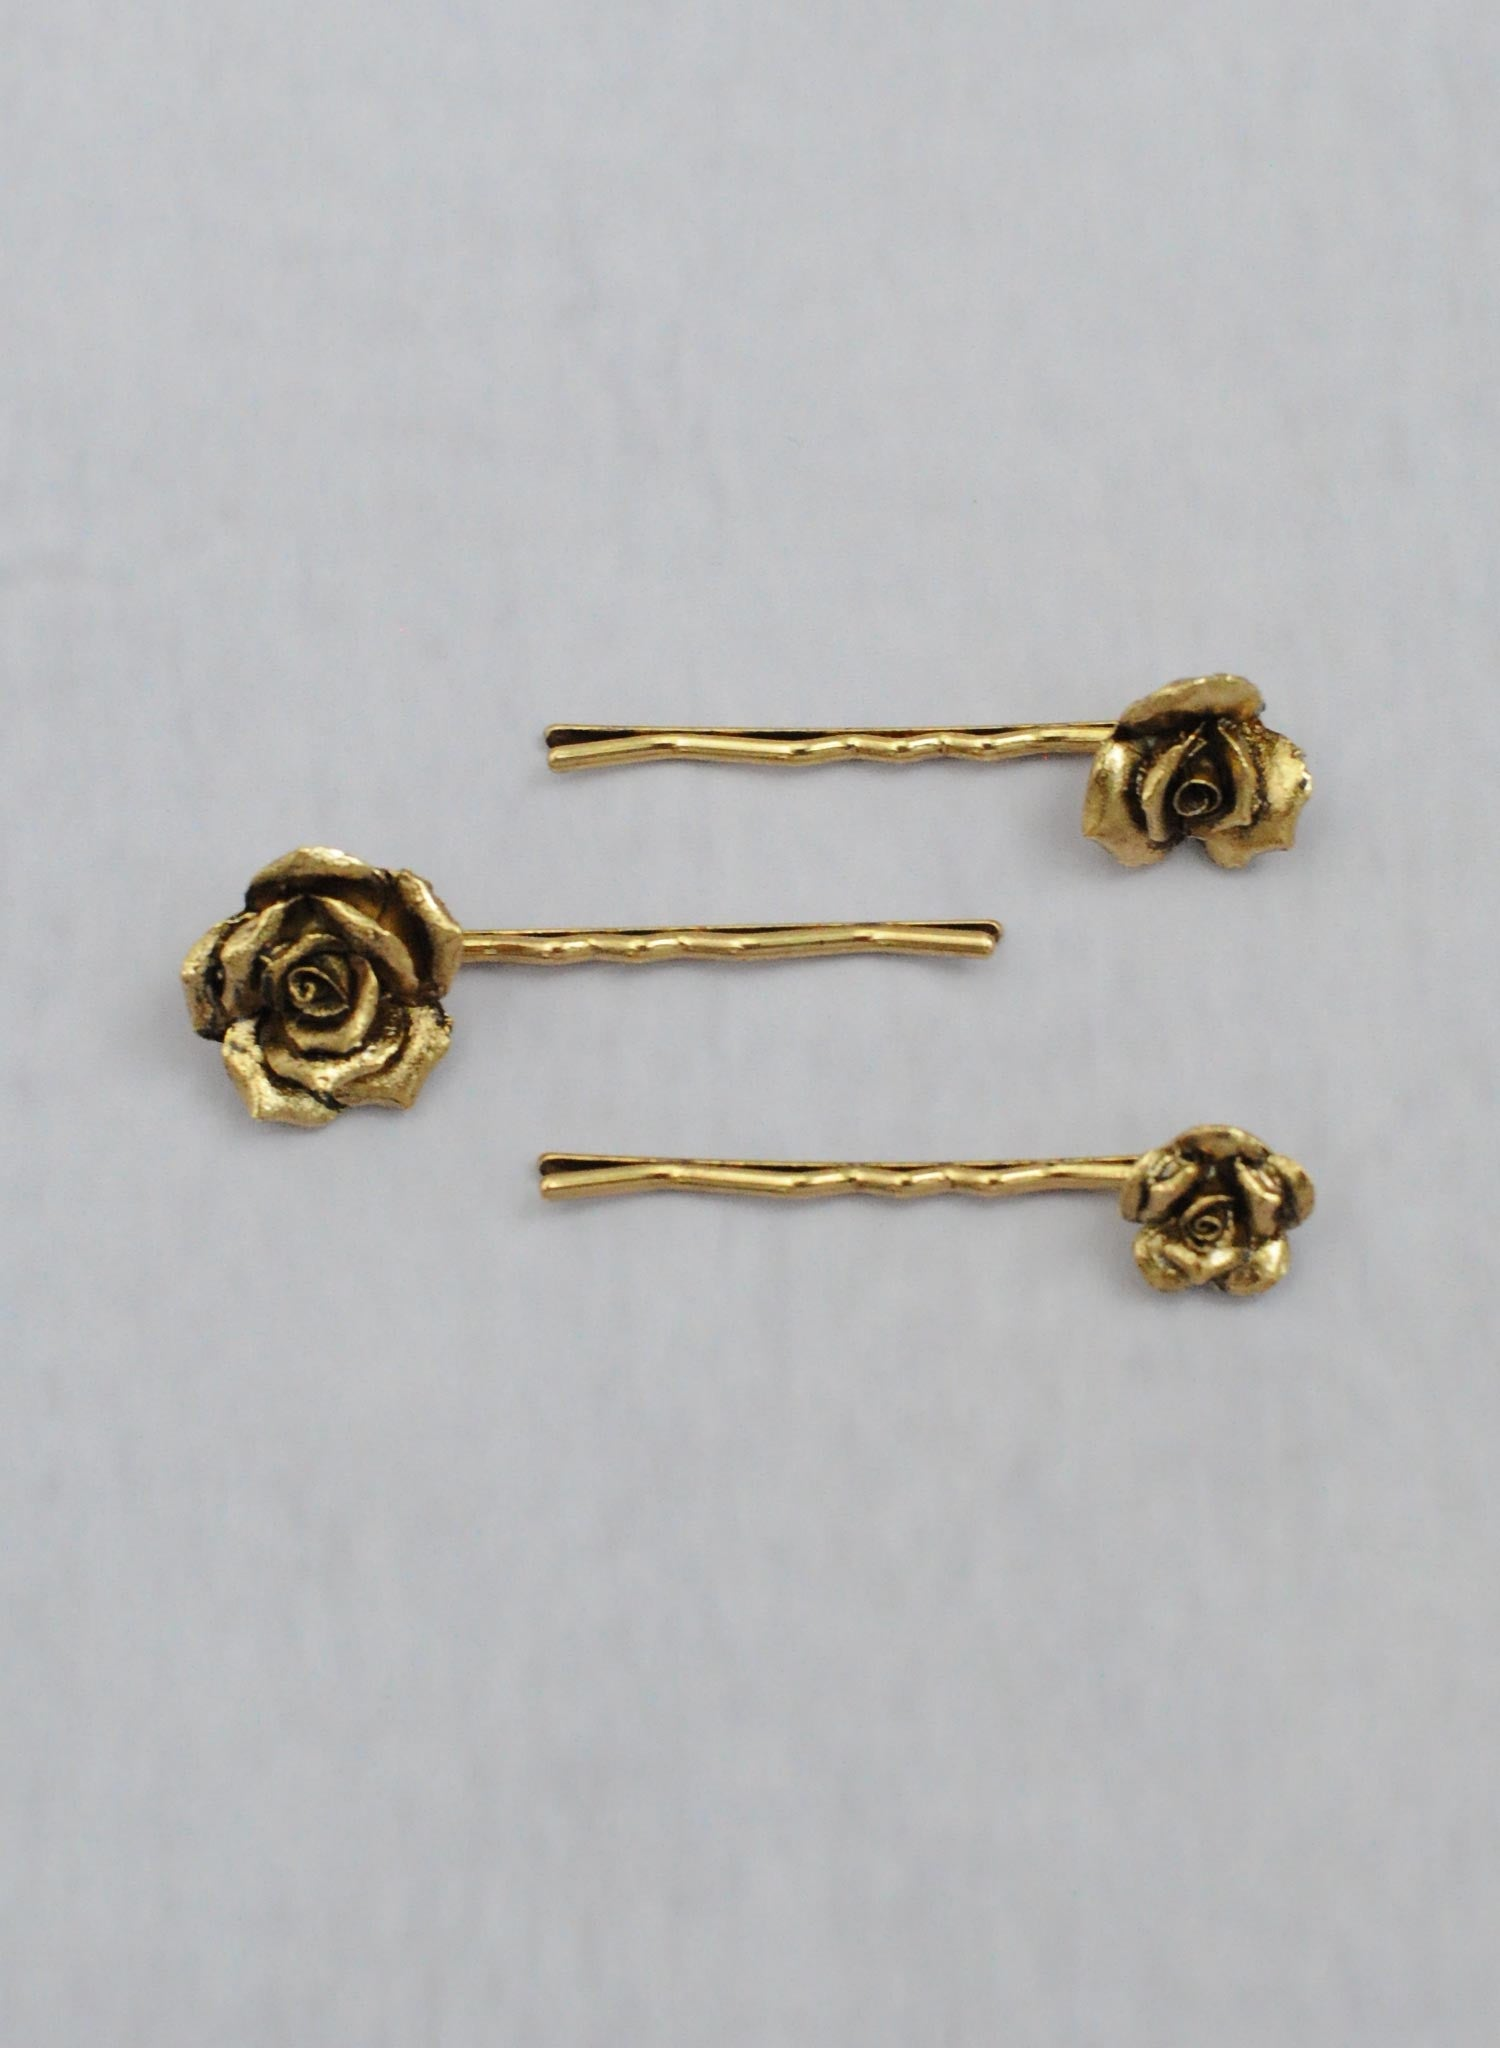 Mini cast roses bobby pin set of 3 - Style #663